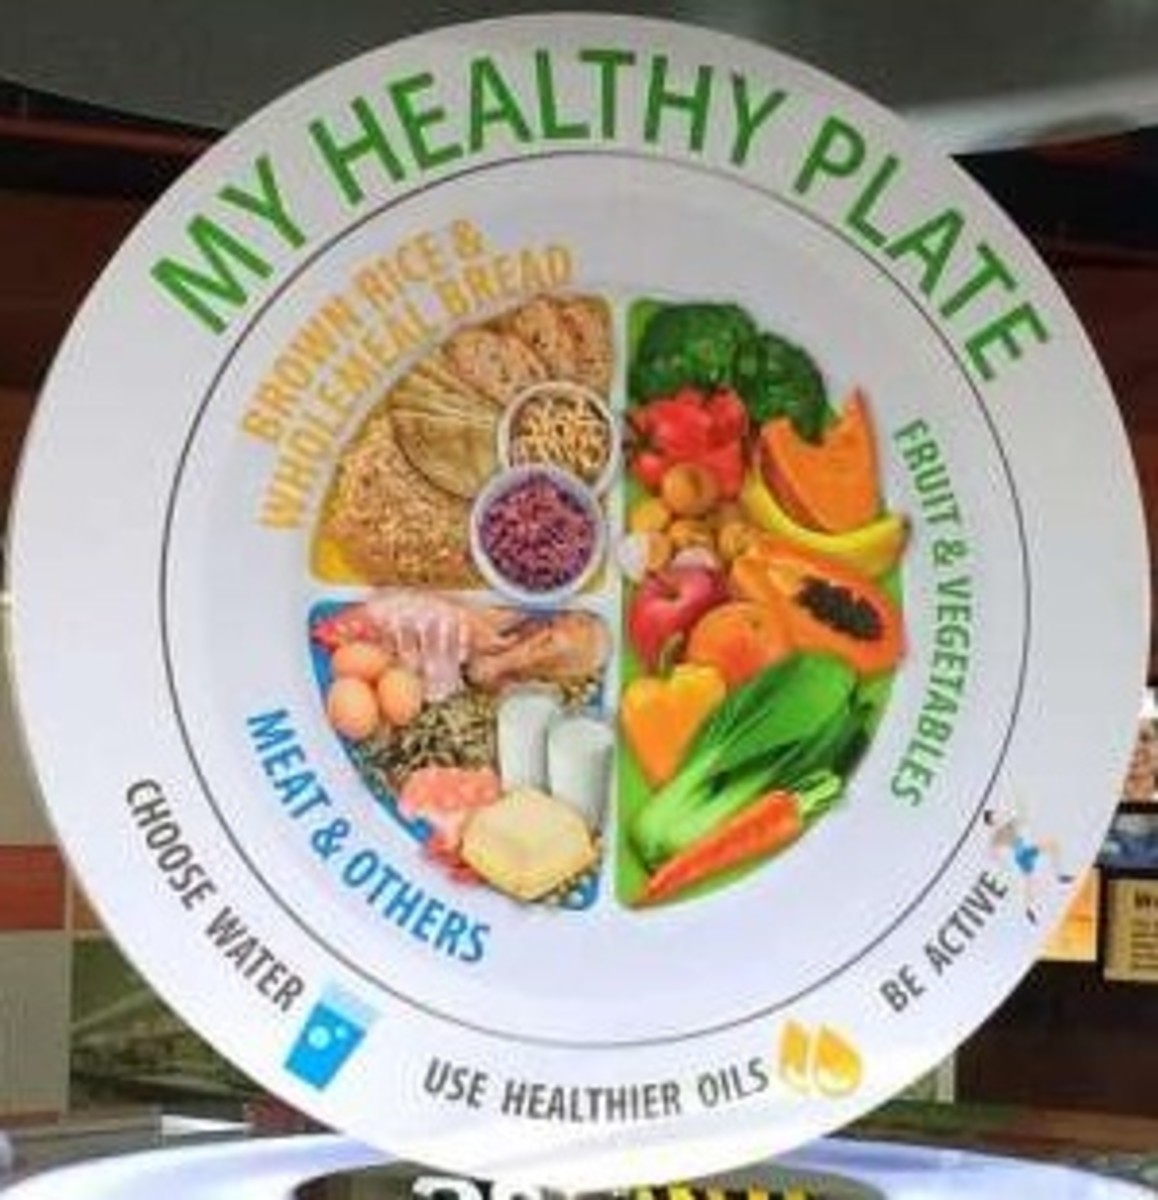 Singapore's My Healthy Plate.